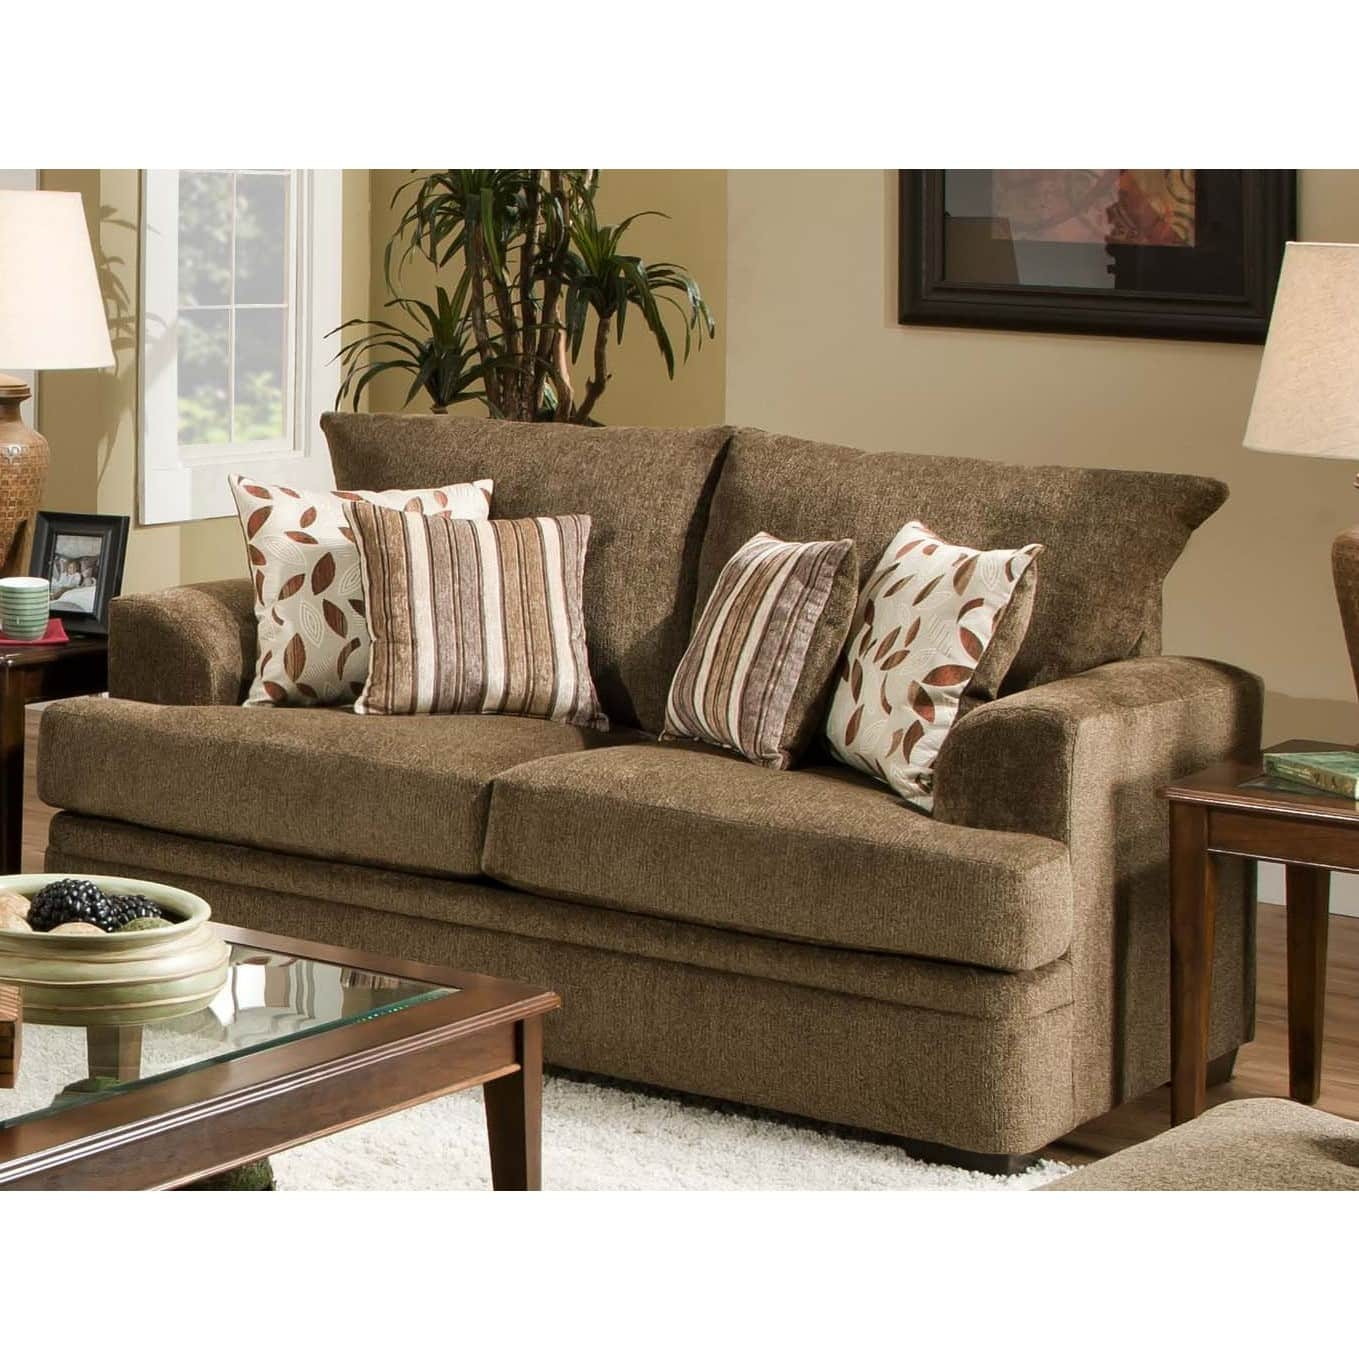 American furniture 3652 1661 cornell cocoa loveseat